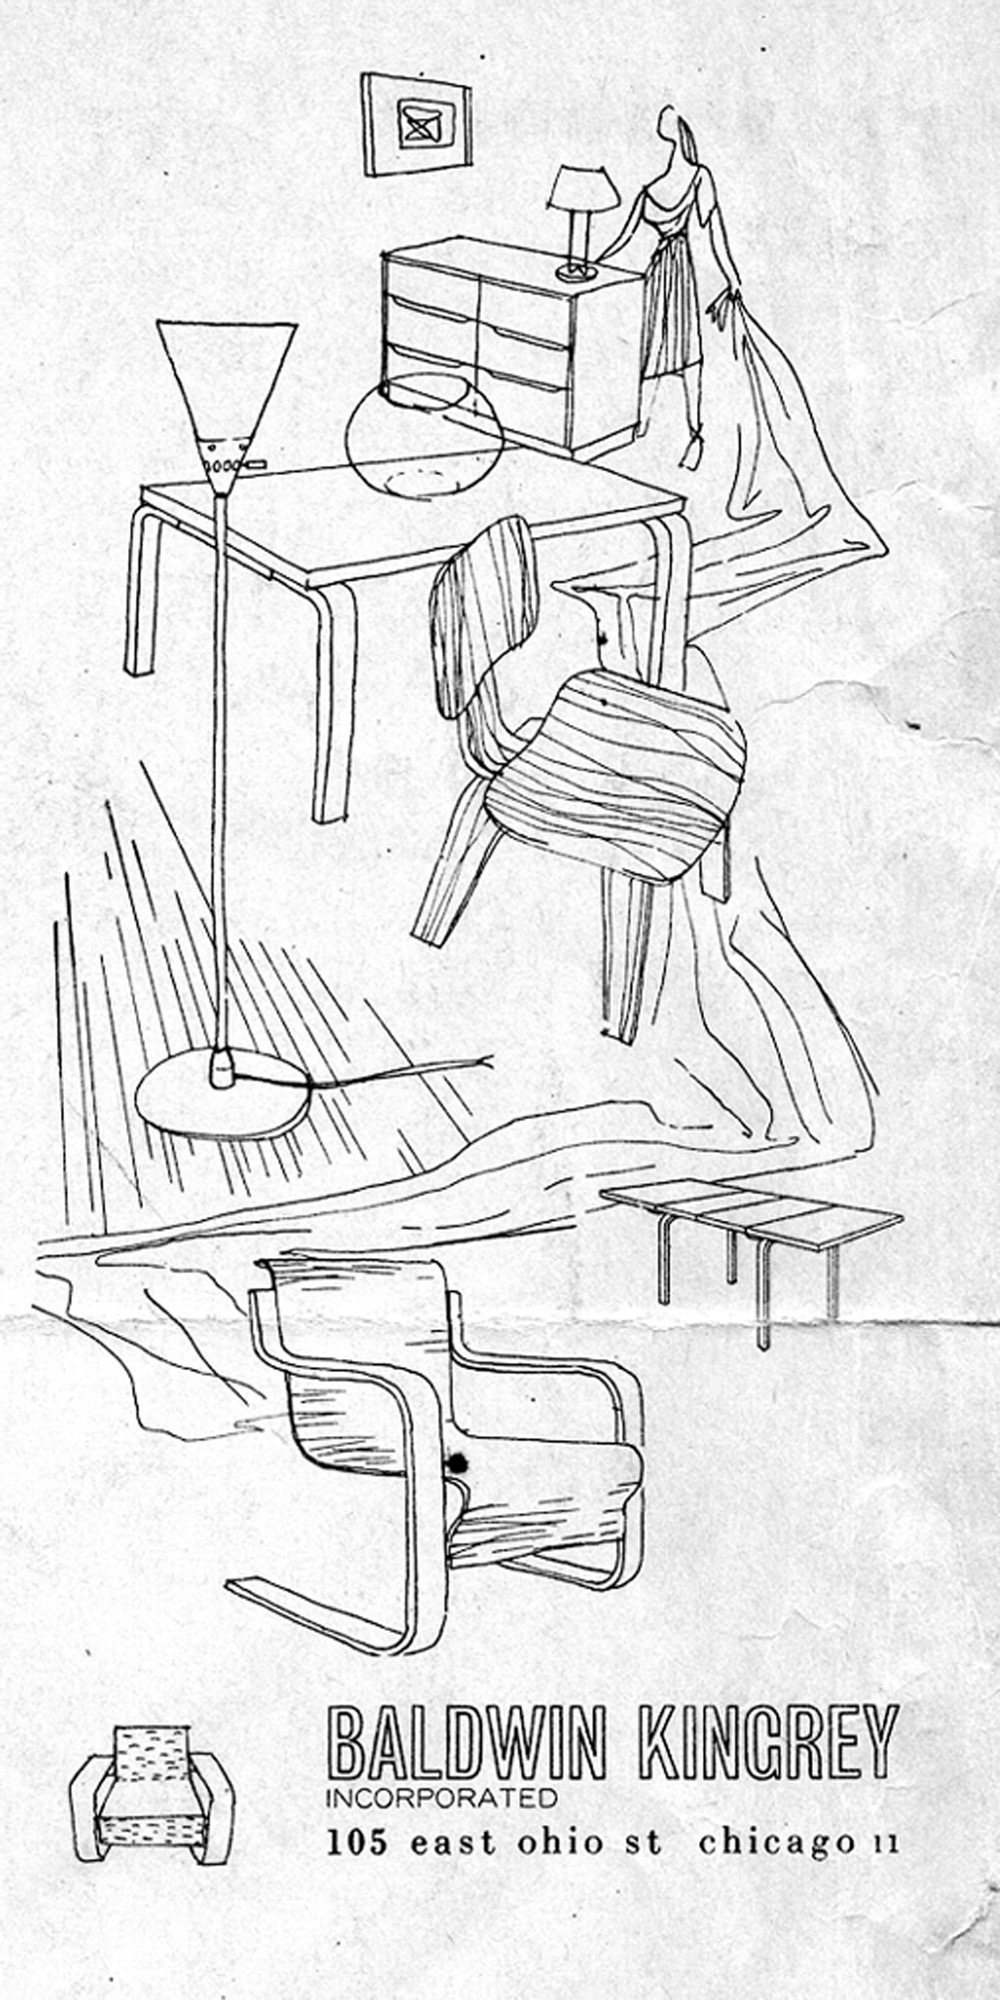 Original drawing by Harry Weese for Baldwin Kingrey's first ad, June 1947